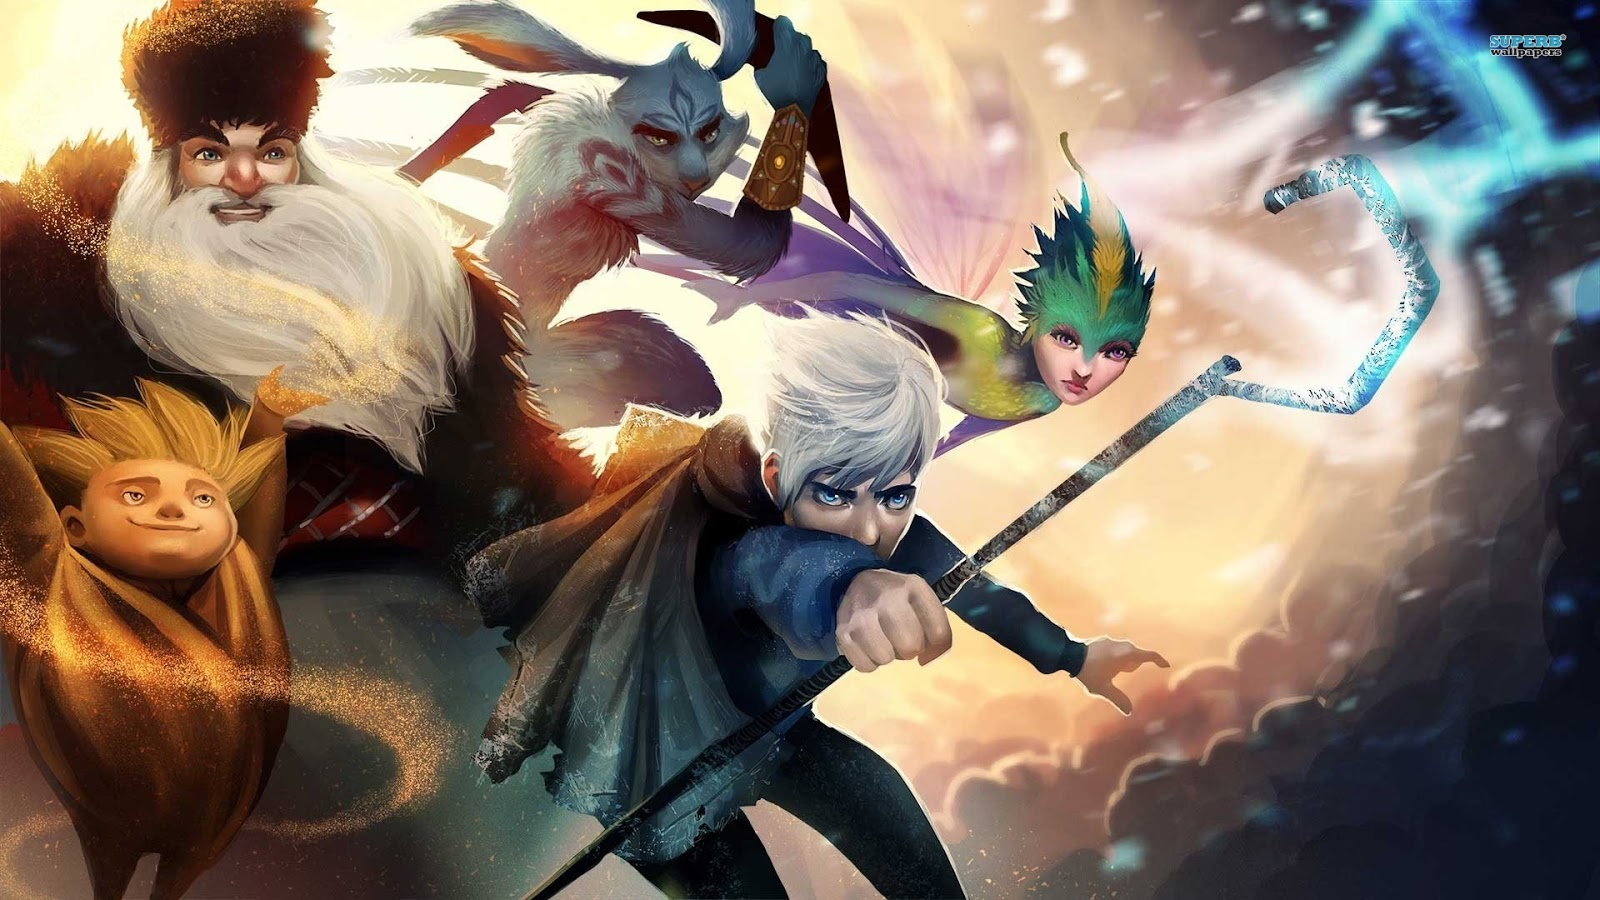 Free wallpapers of the movie rise of the guardians - Pics of rise of the guardians ...